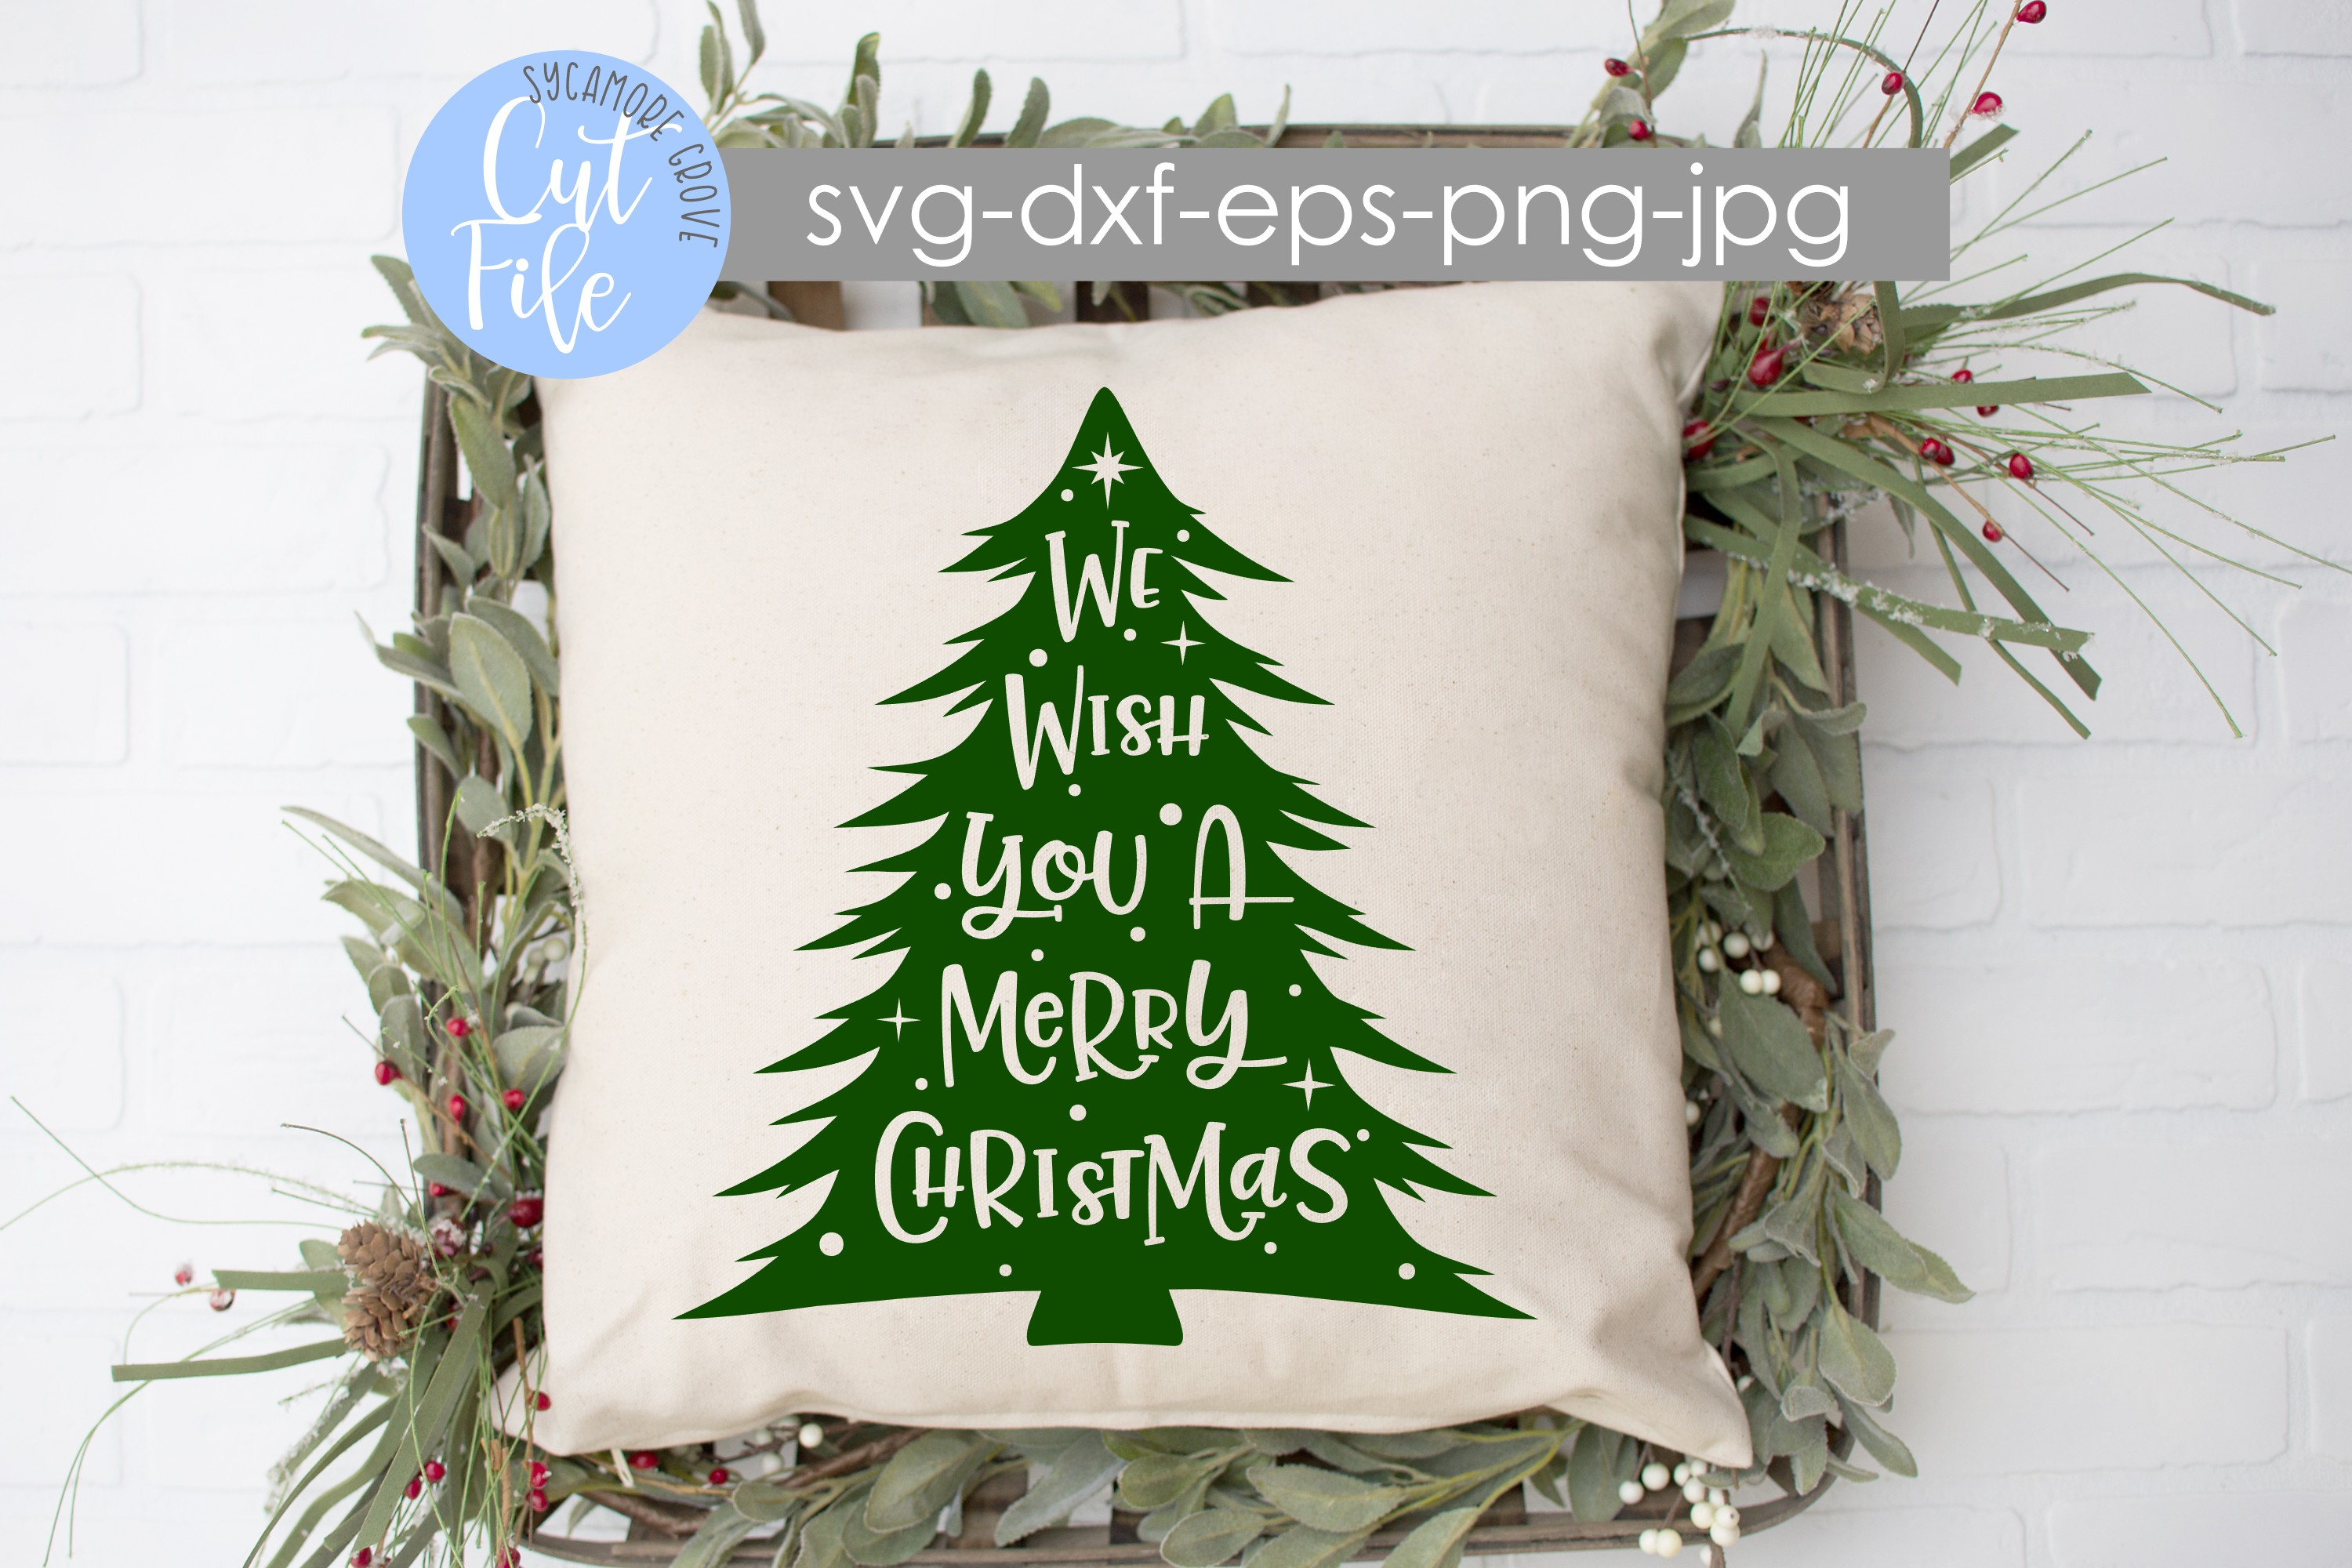 We Wish You A Merry Christmas SVG example image 4